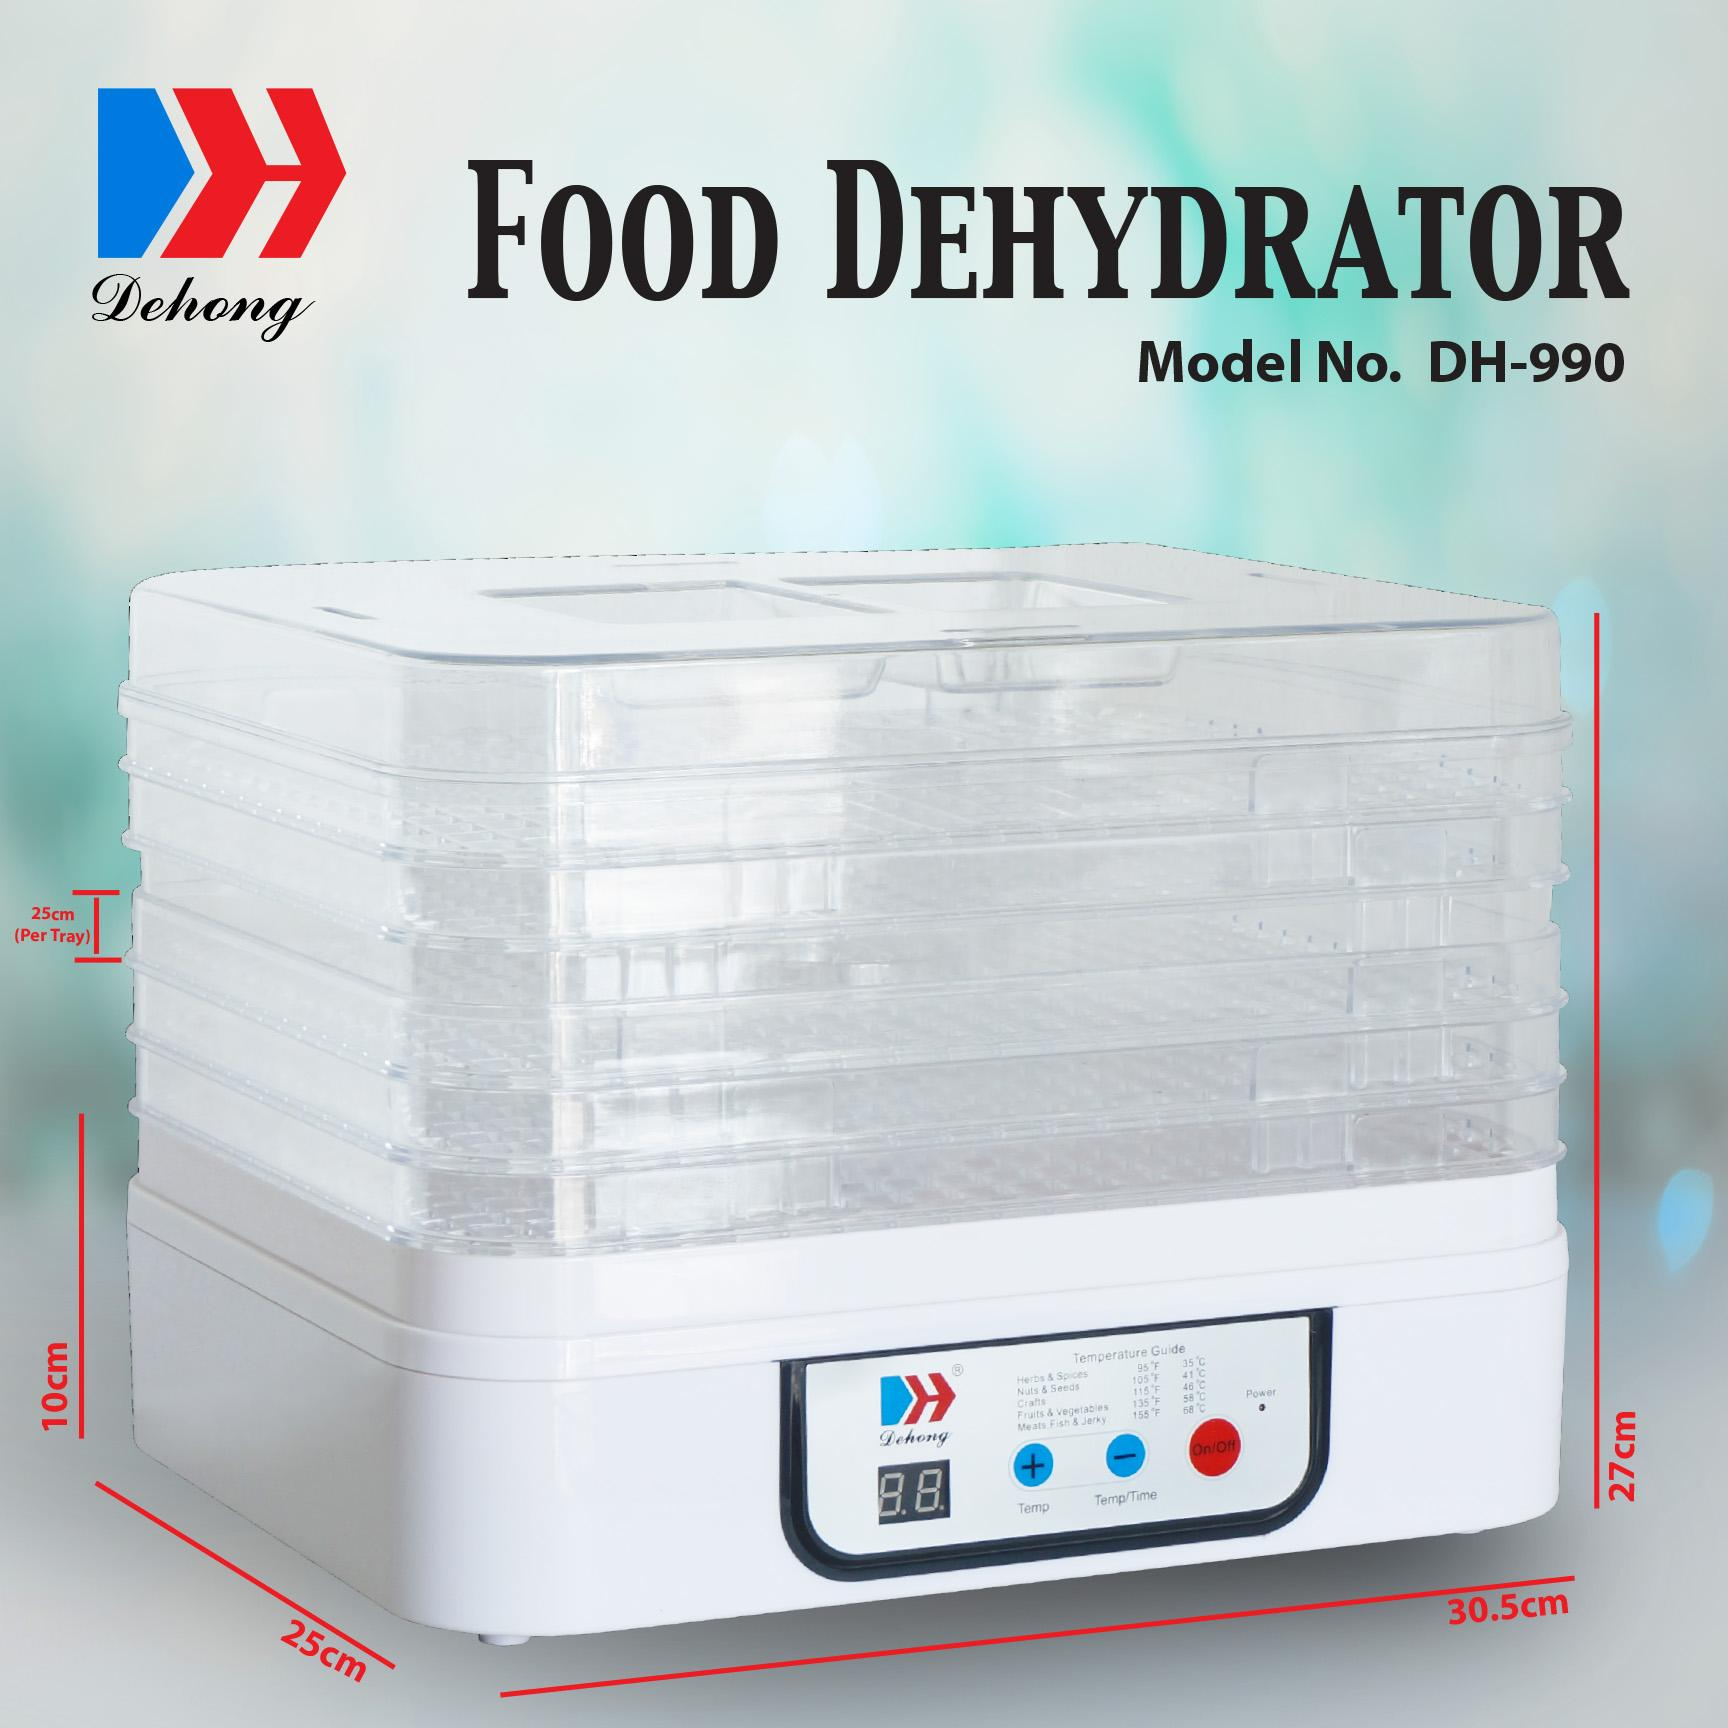 Dehong Food Dehydrator Dh-990 By Os2 Optimal Software Services.